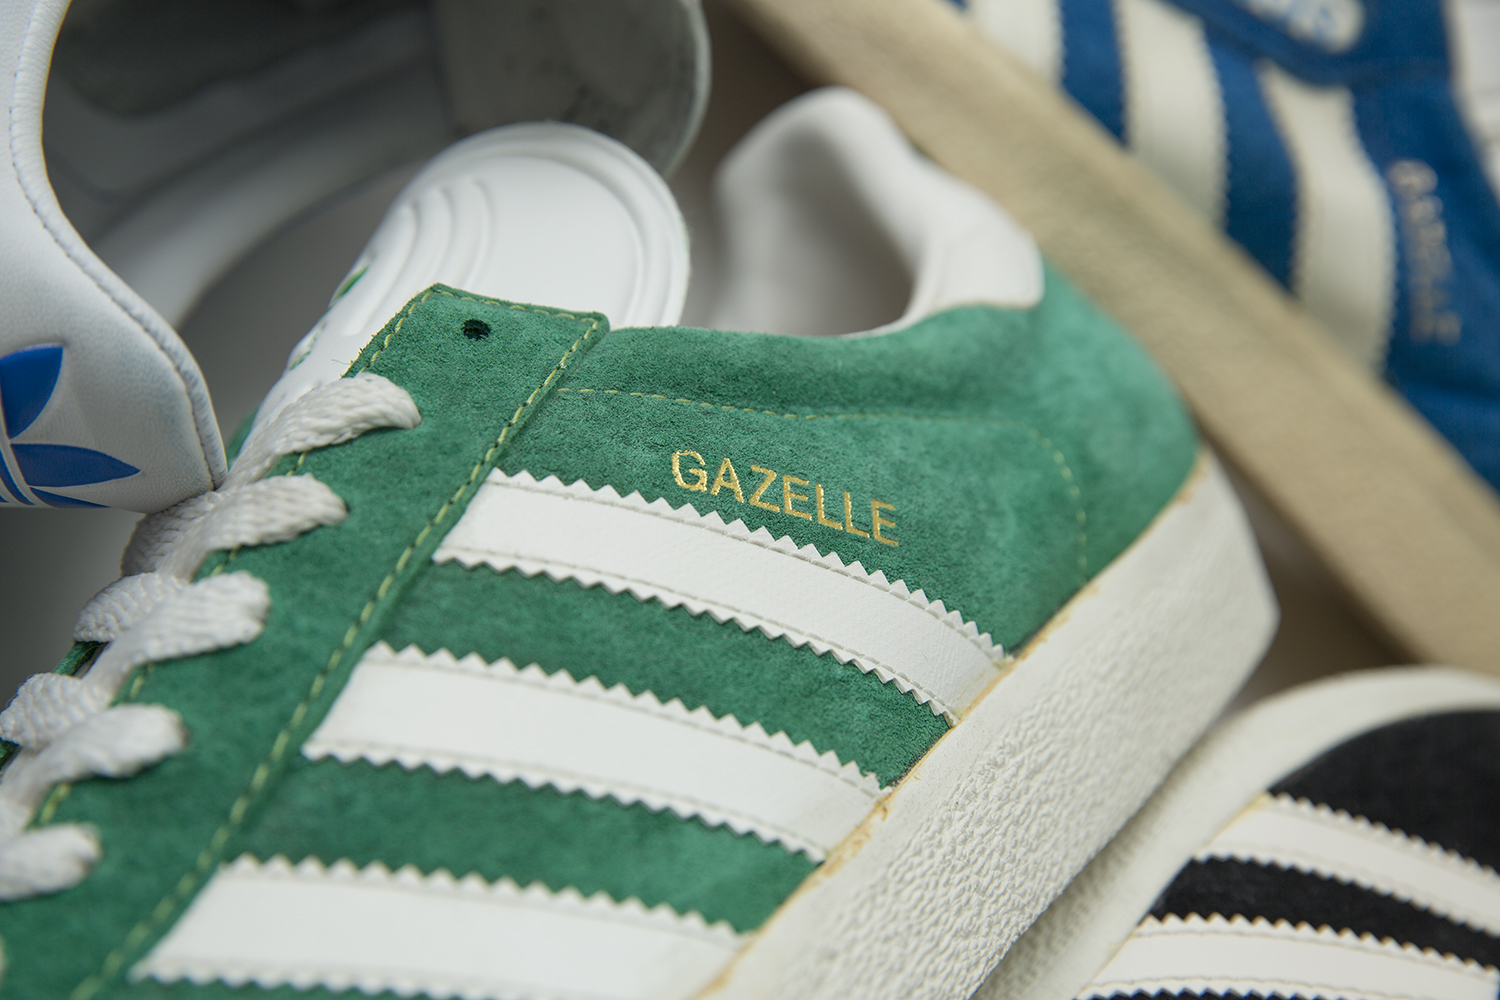 The size? HQ Lock-Up – adidas Originals Gazelle